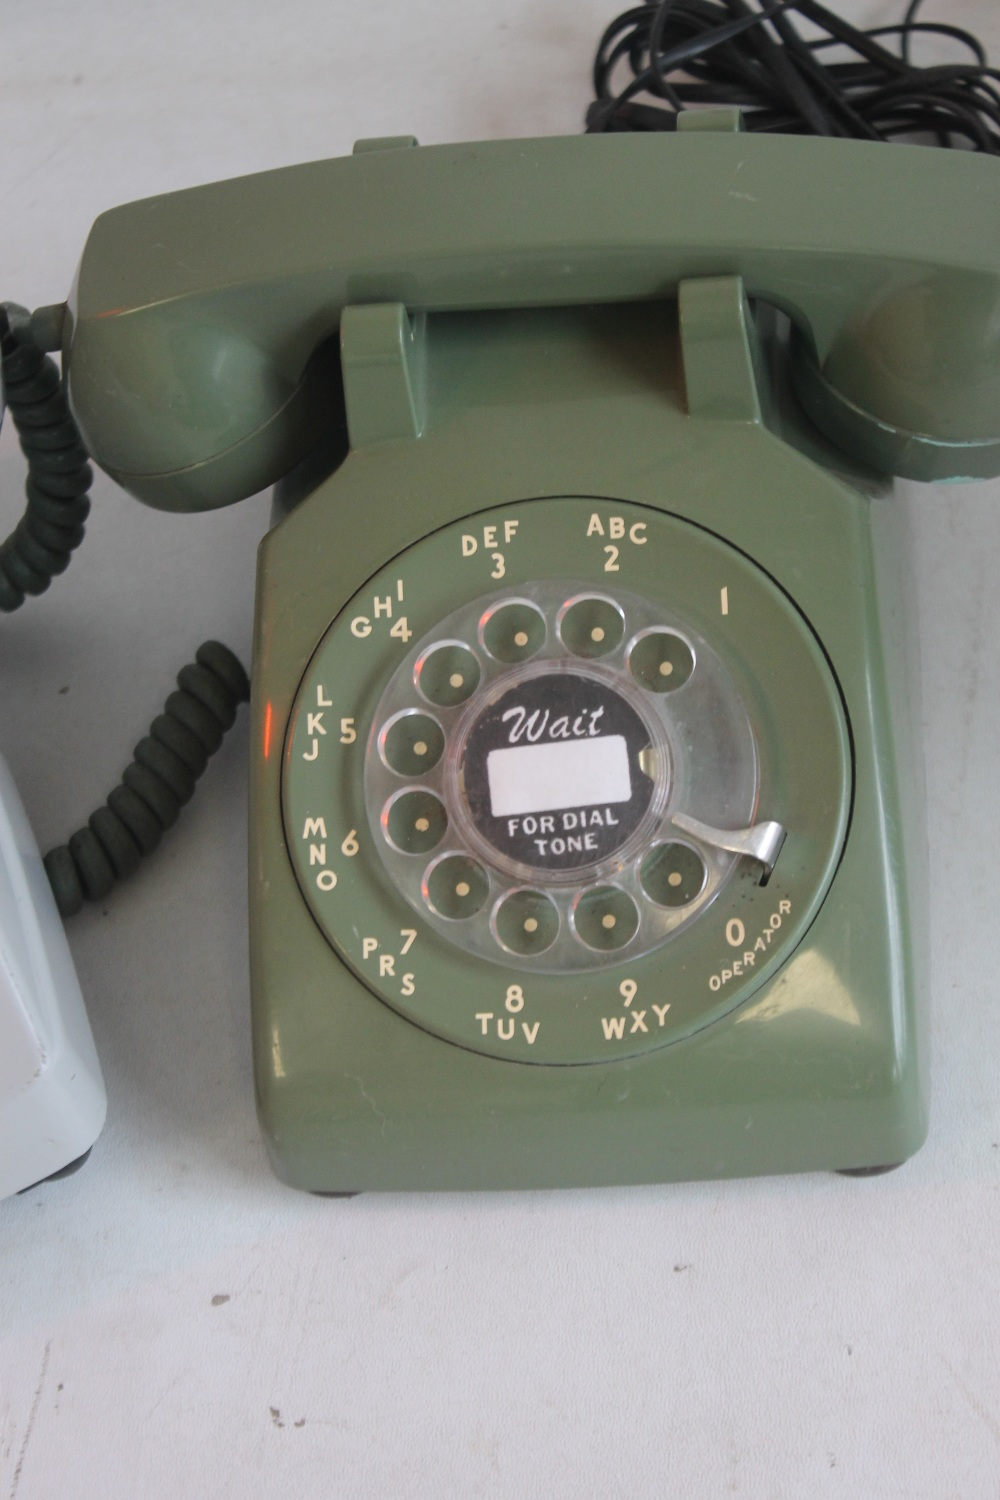 1950S FRENCH DIAL TELEPHONE WITH MOTHER IN LAW LISTENER CONVERTED together with a 1950s US 500 - Image 2 of 3